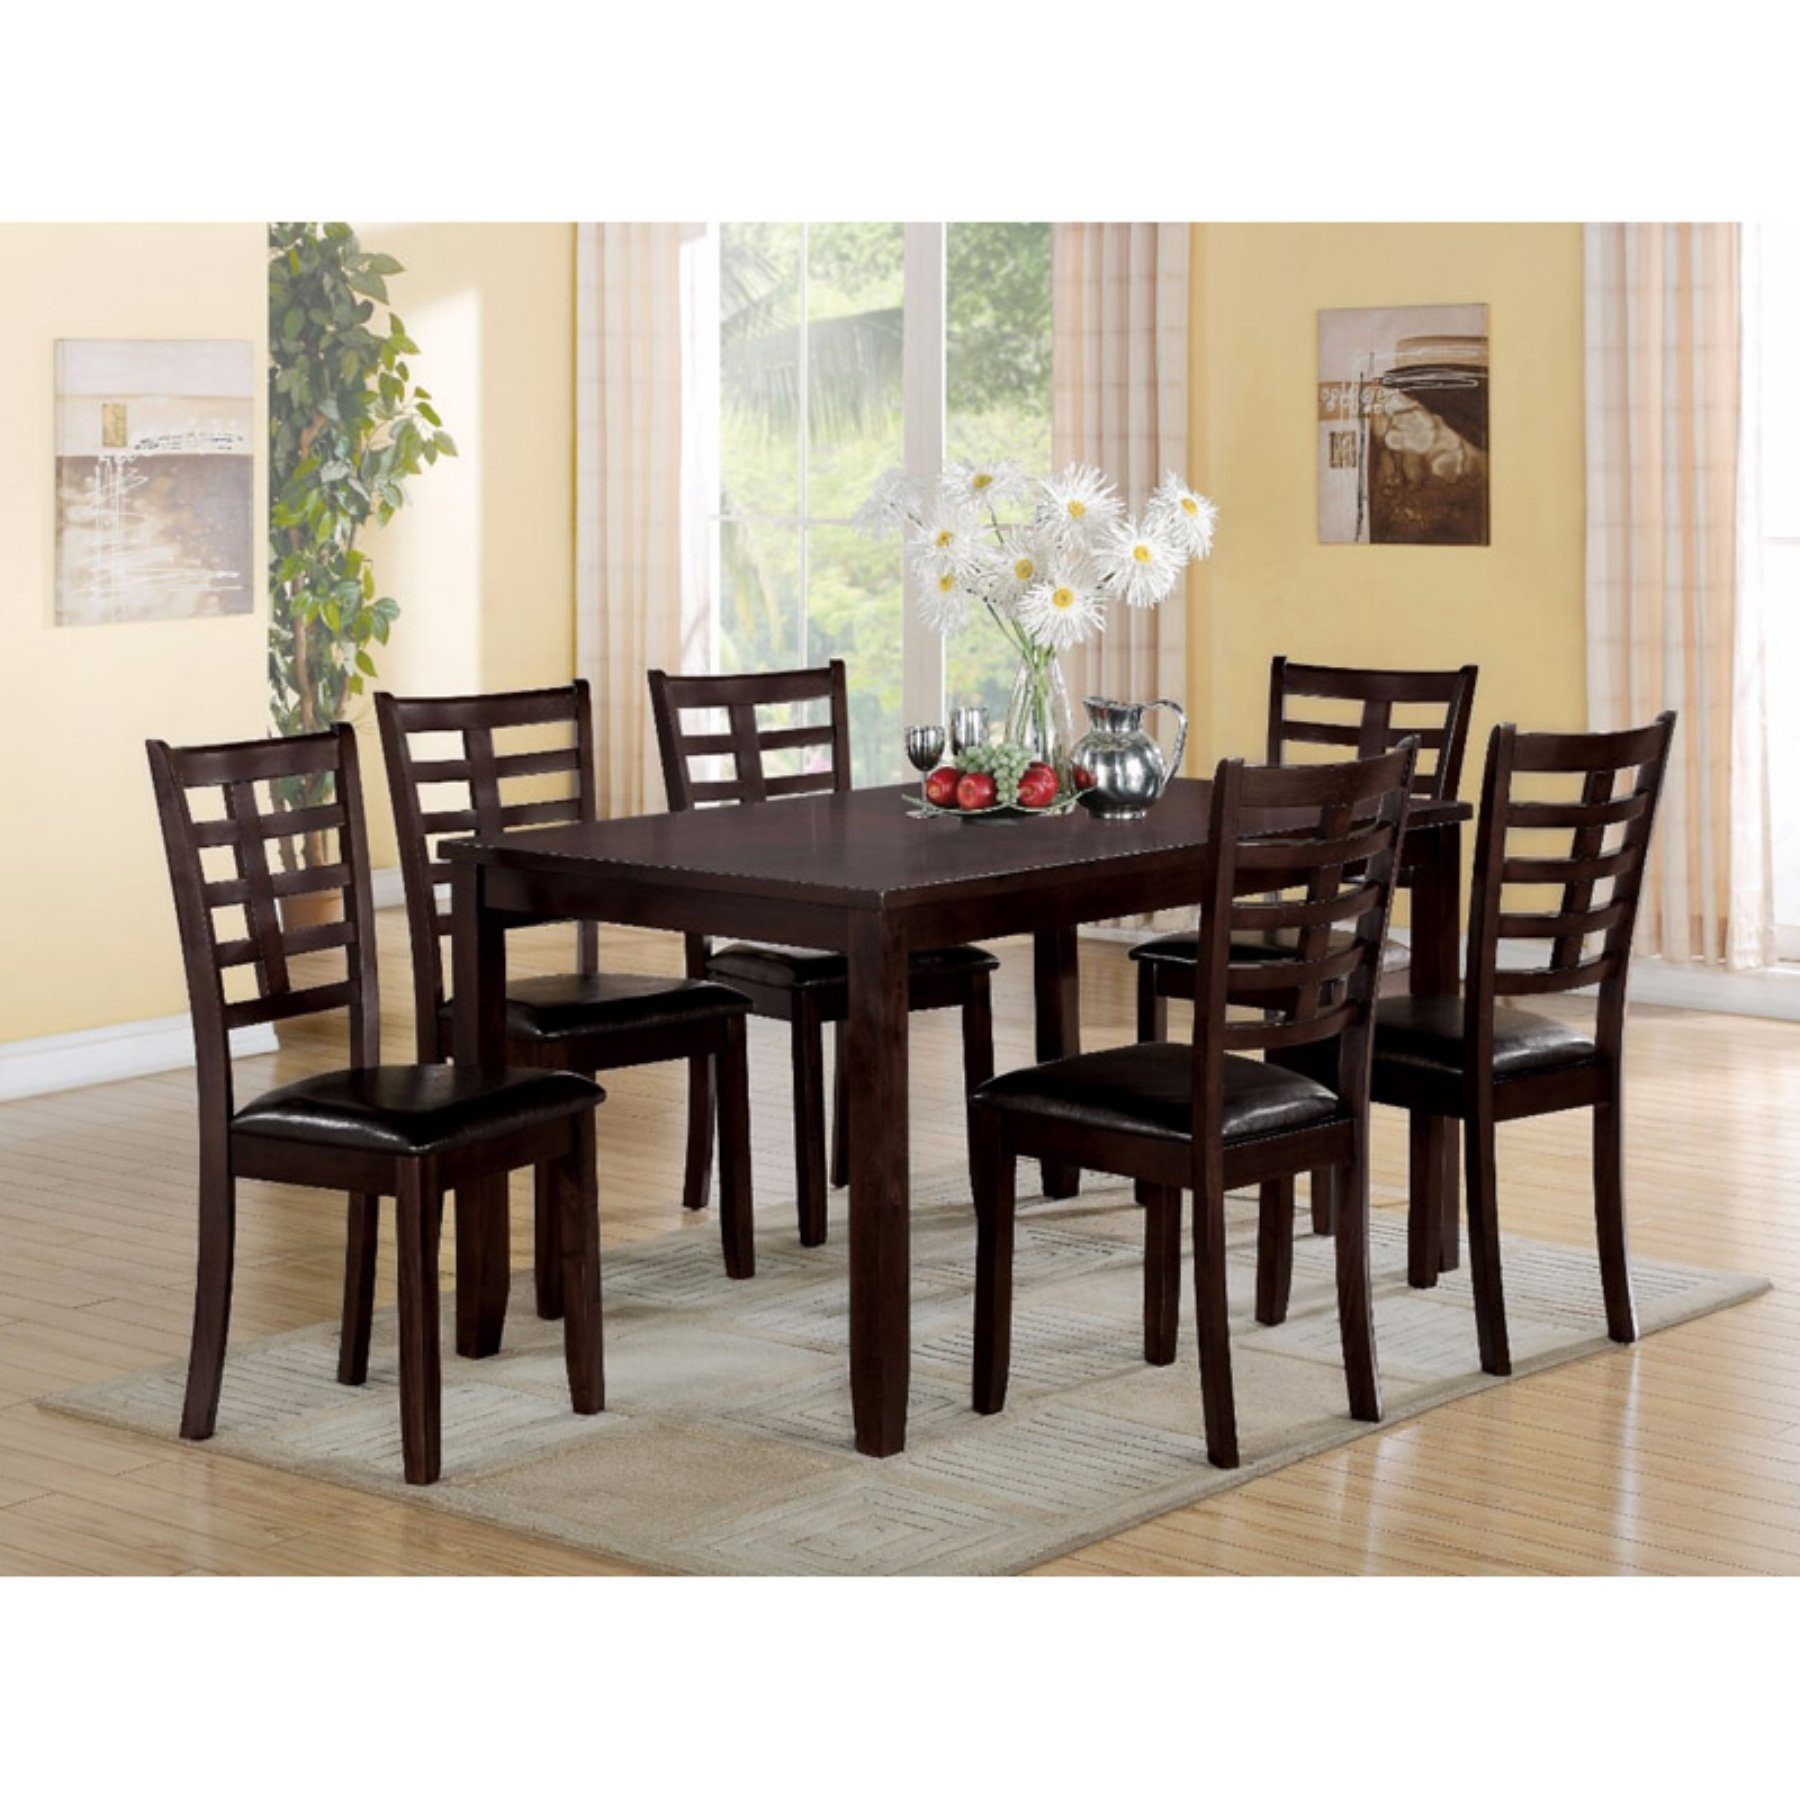 Benzara Wooden 7 Piece Rectangular Dining Table Set In 2018 Regarding Most Recently Released Market 7 Piece Dining Sets With Side Chairs (View 14 of 20)